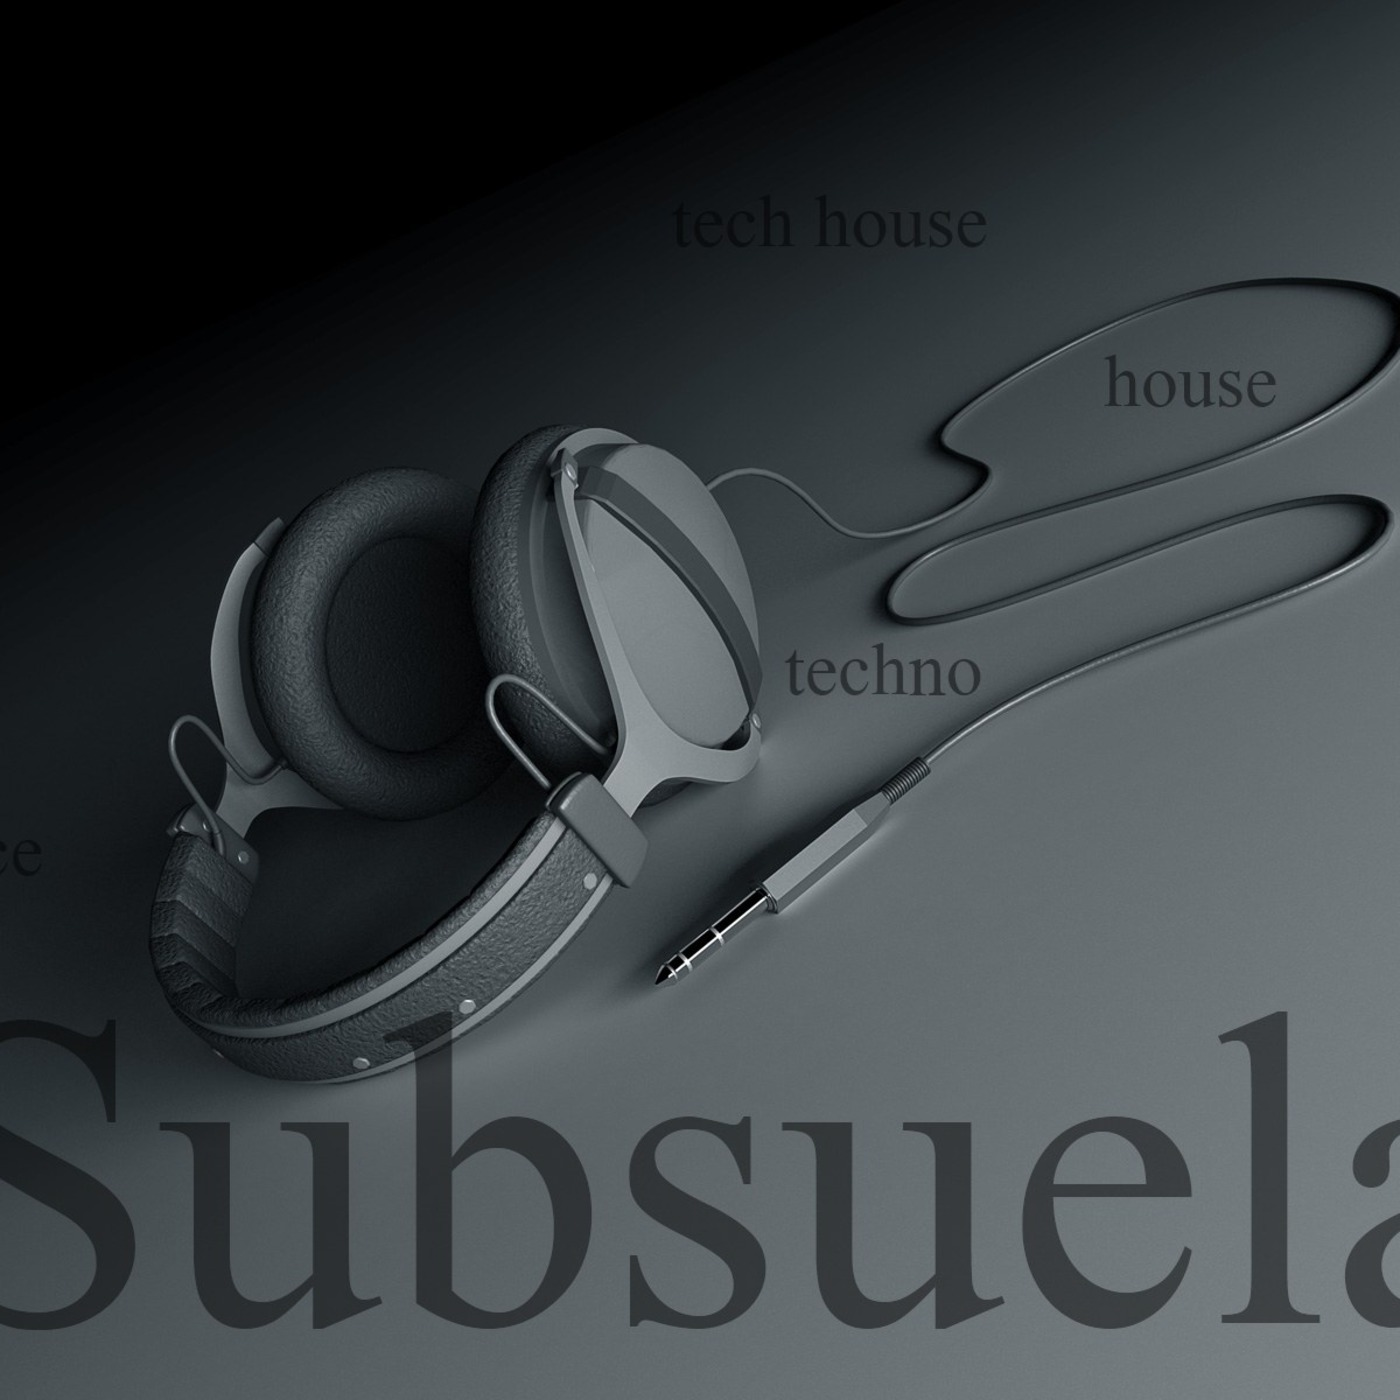 Subsuela Podcast